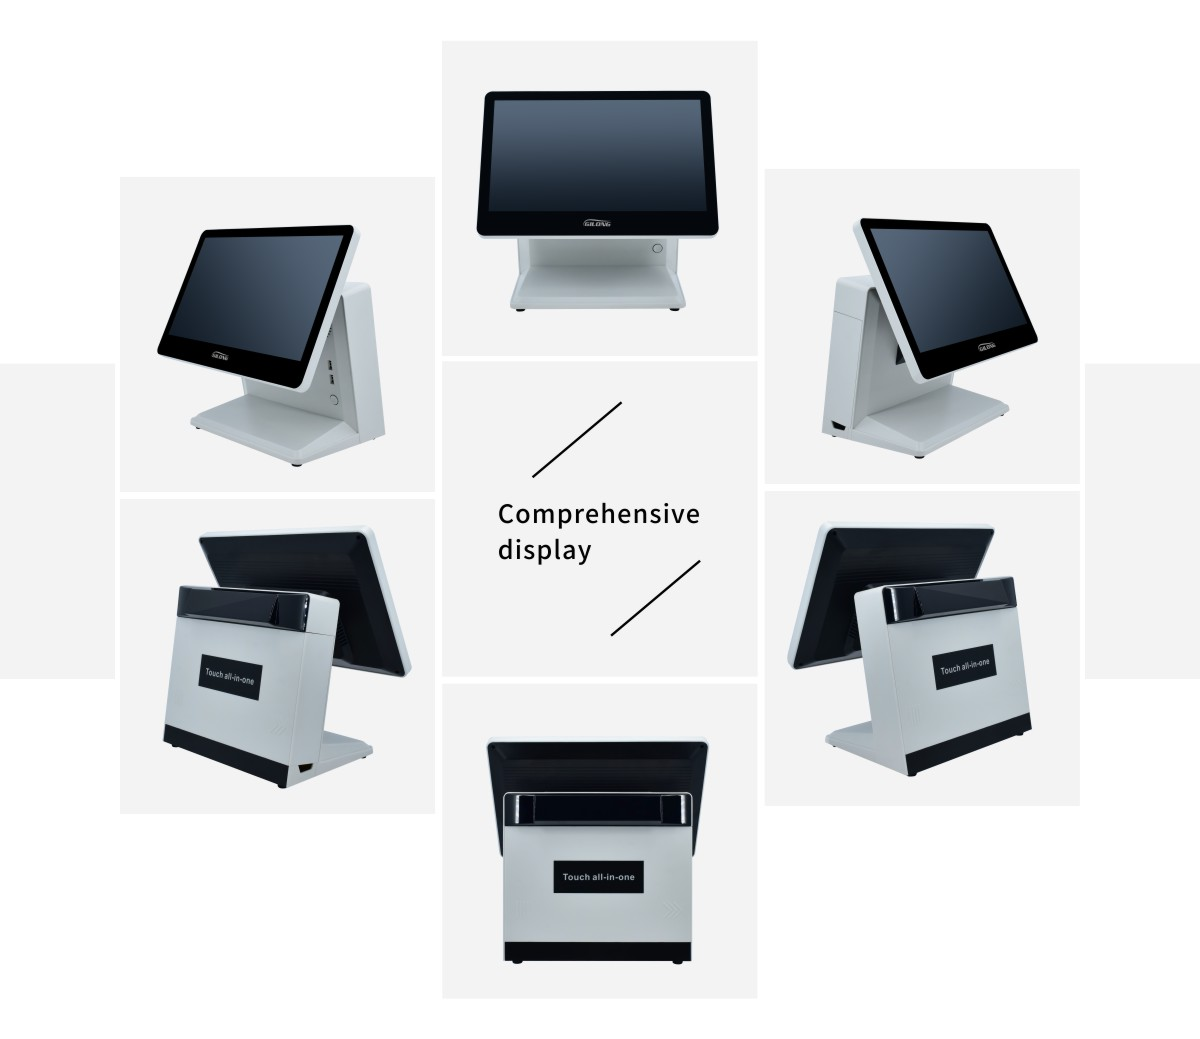 15.6 inch windows epos